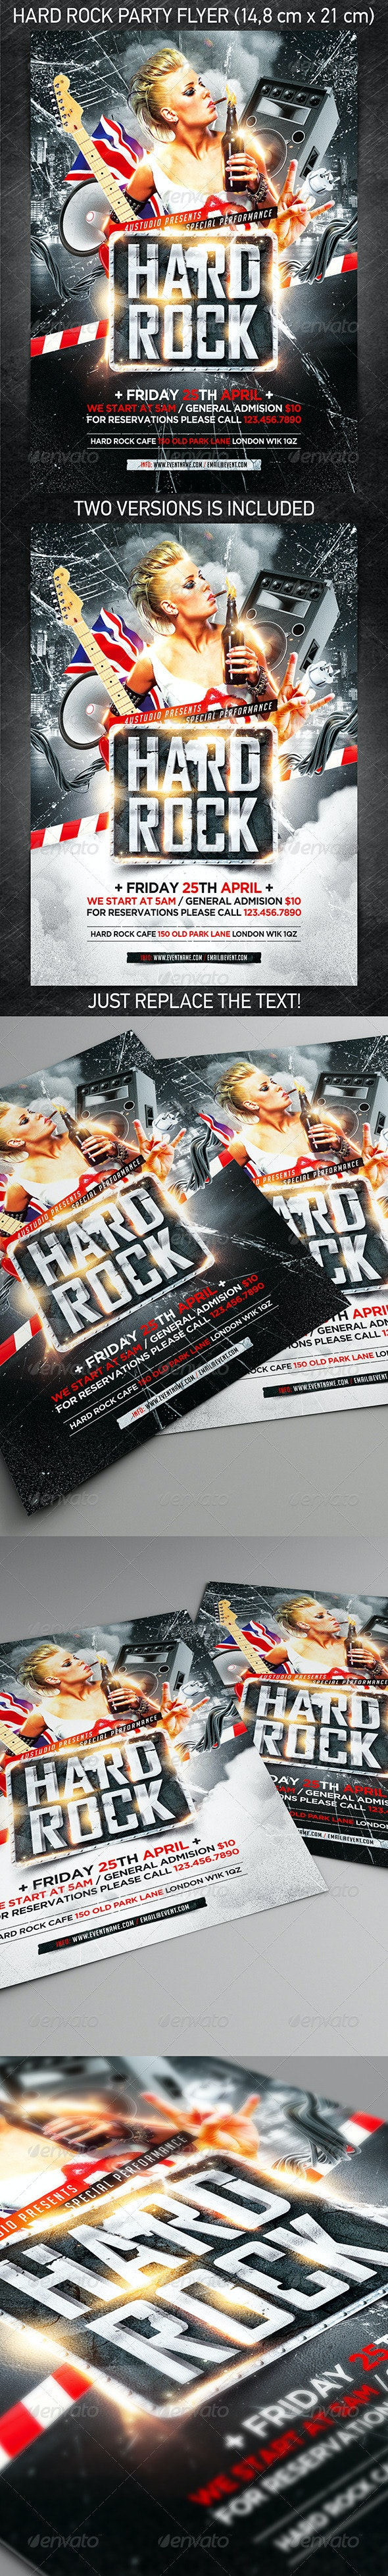 Hard Rock Party Flyer - Concerts Events